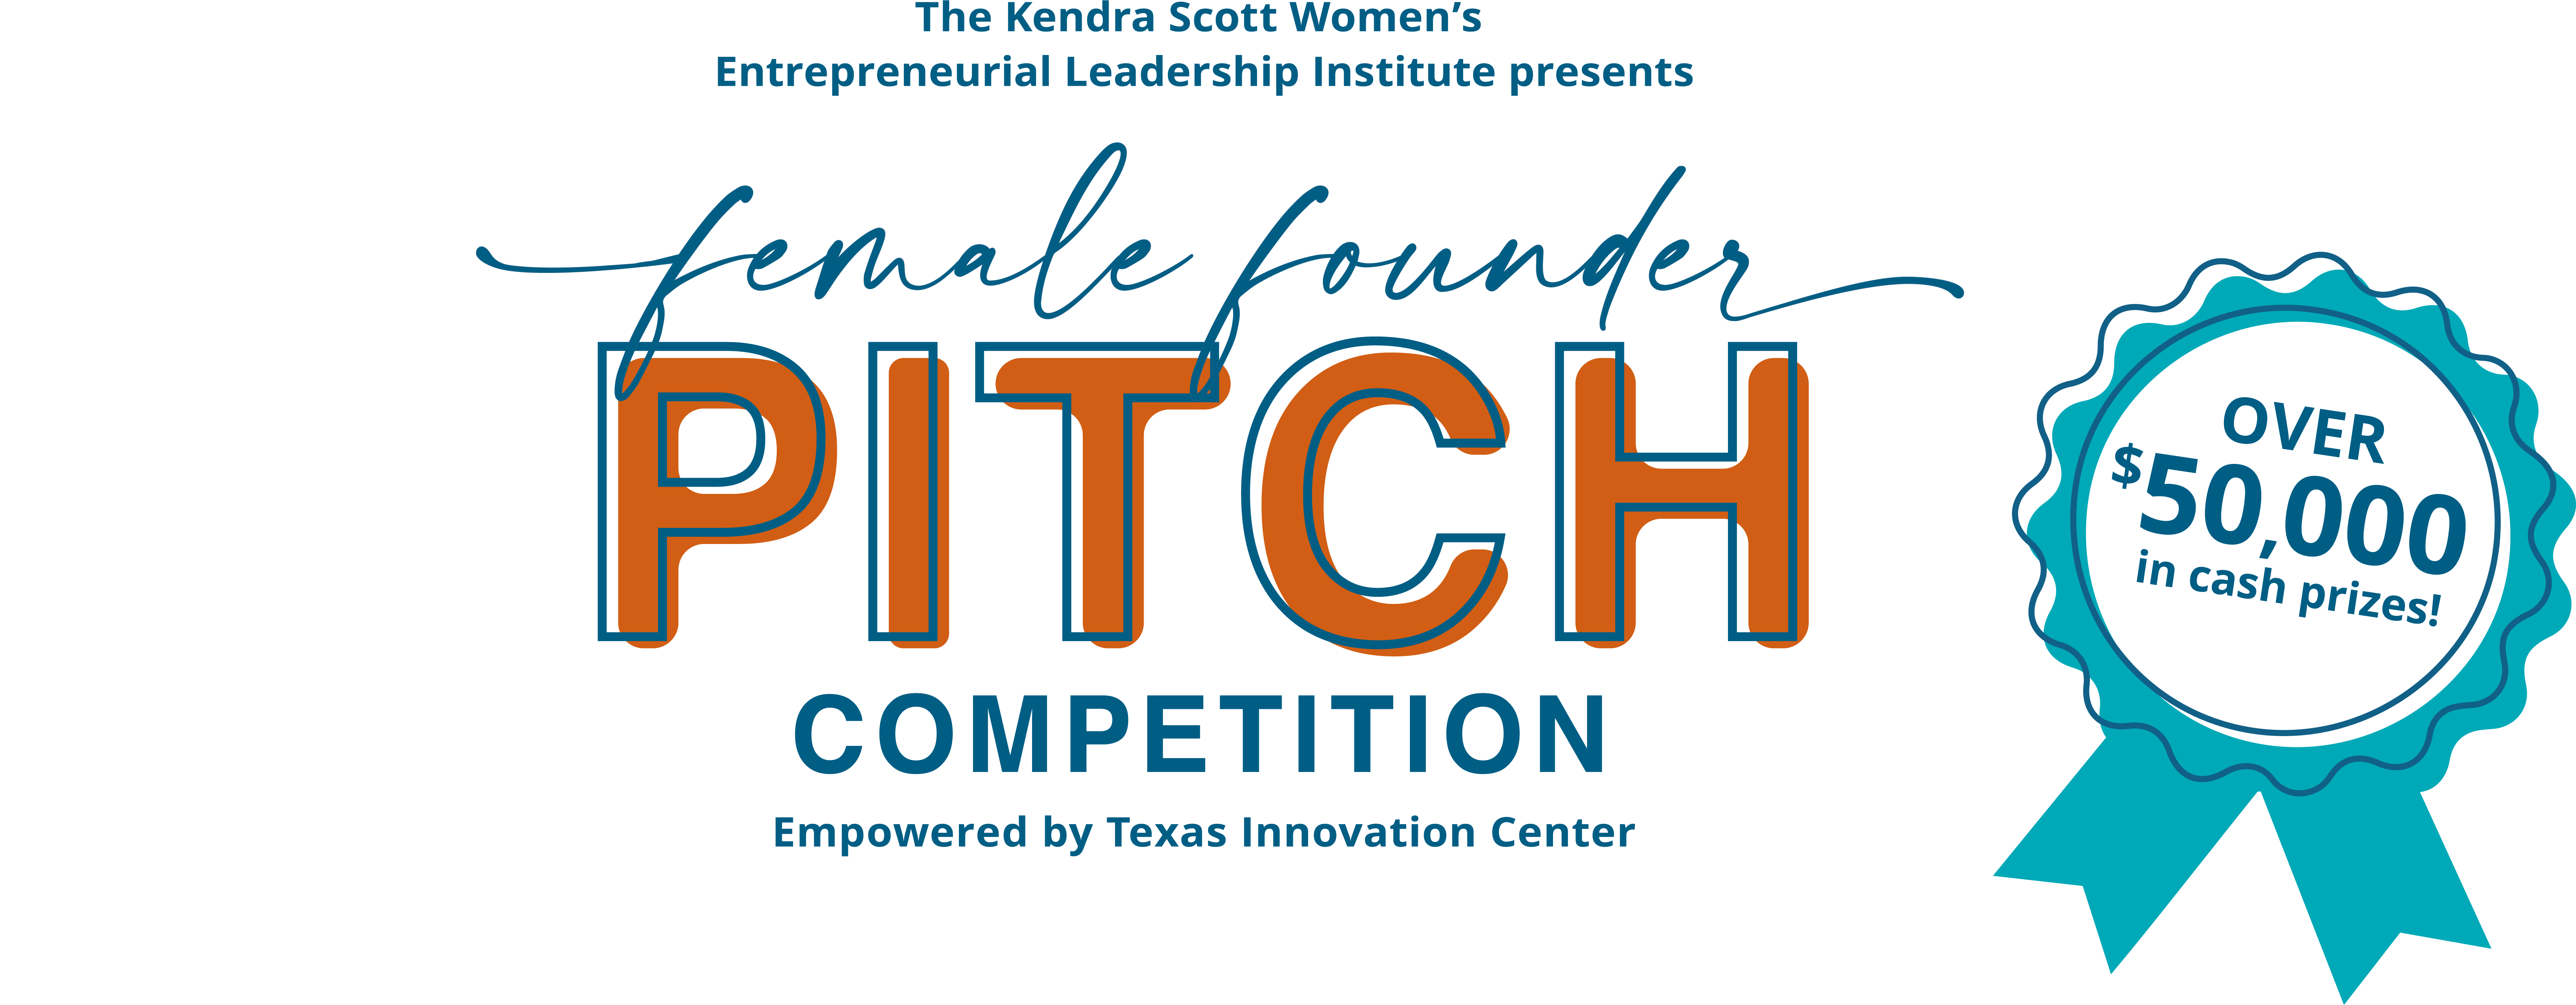 Female Founder Pitch Competition Fall 2021